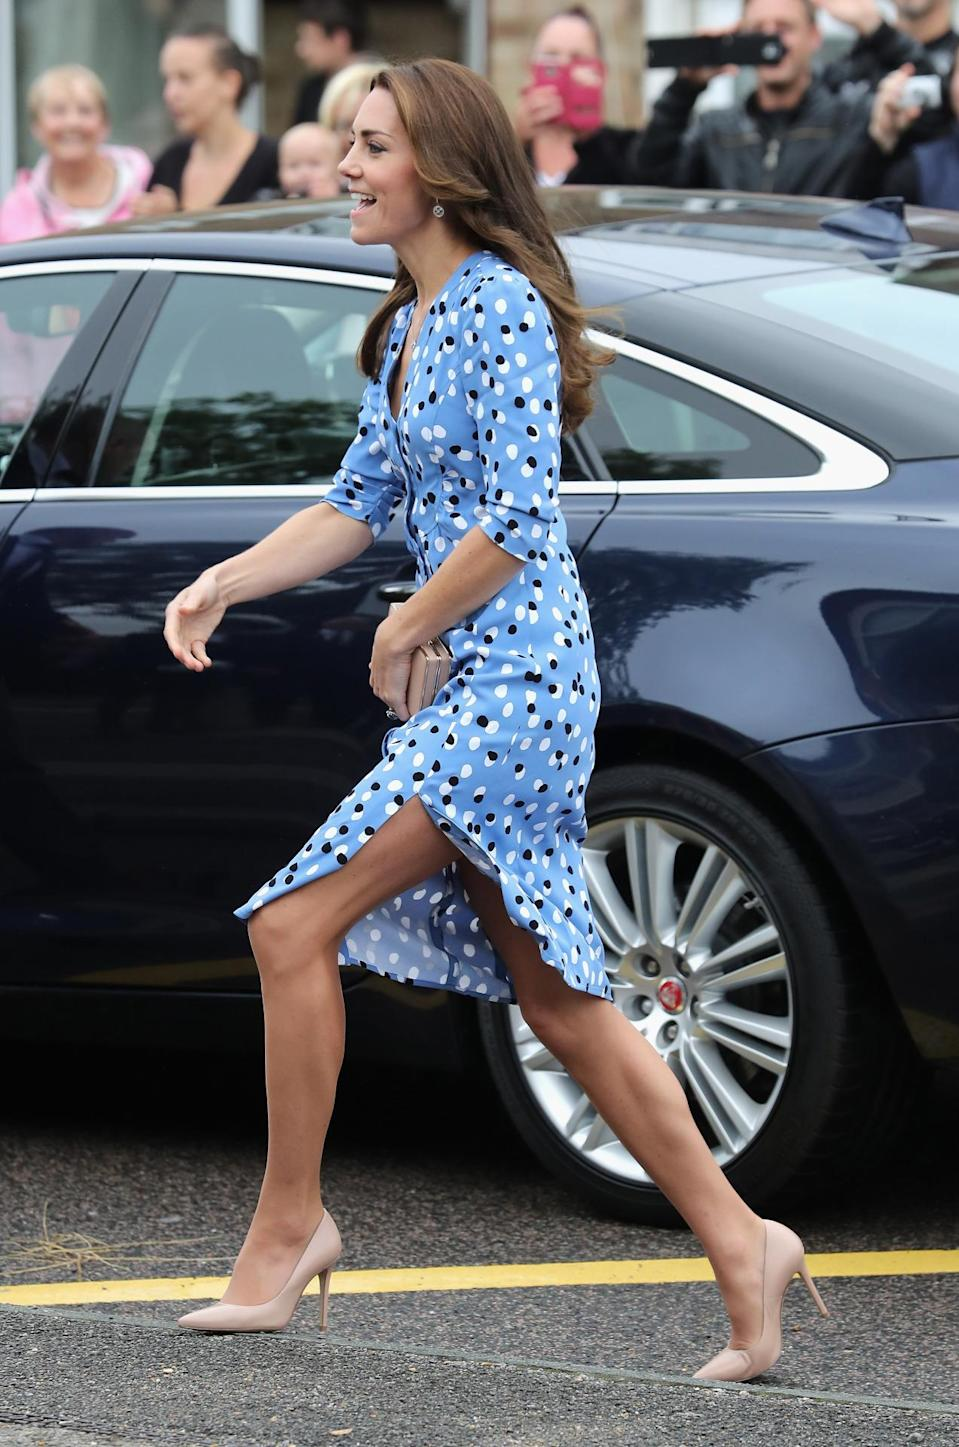 <p>For another mental health engagement, the Duchess opted for a colourful vibe in a polka-dot Altuzarra dress featuring a risqué thigh-high split. </p><p><i>[Photo: Getty] </i><br></p>